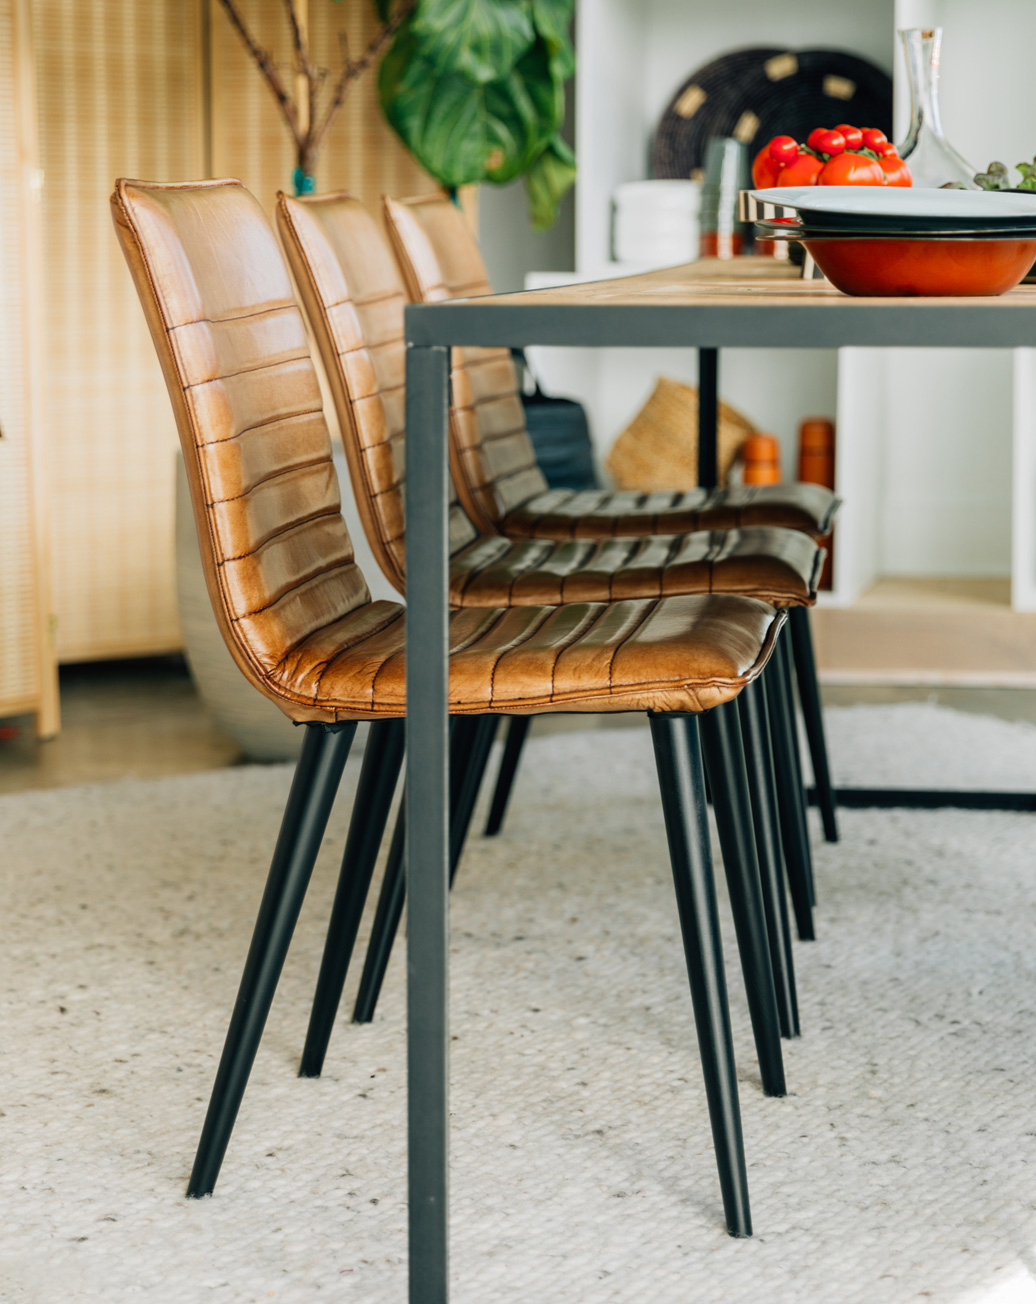 Industrial, Mid Century Modern Furnishings And Decor: Industry West Pertaining To Recent West Hill Family Table 3 Piece Dining Sets (View 20 of 20)